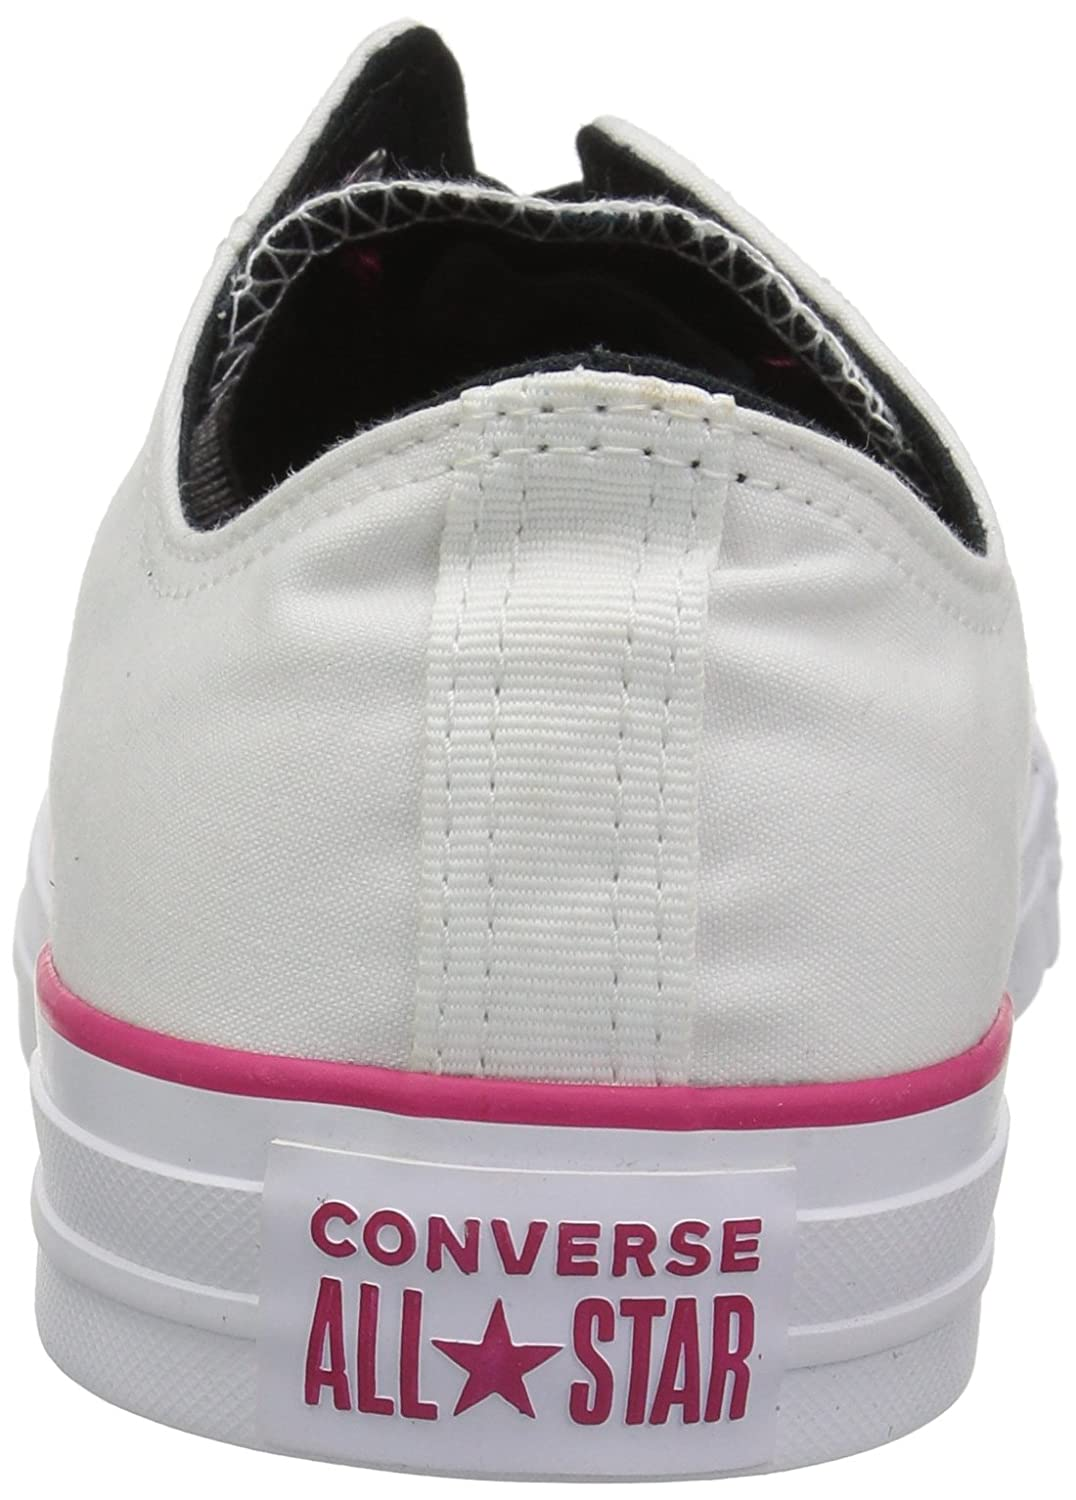 Converse - Chuck Taylor Taylor Taylor All Star Low Top, Farbblock Unisex-Erwachsene  273727